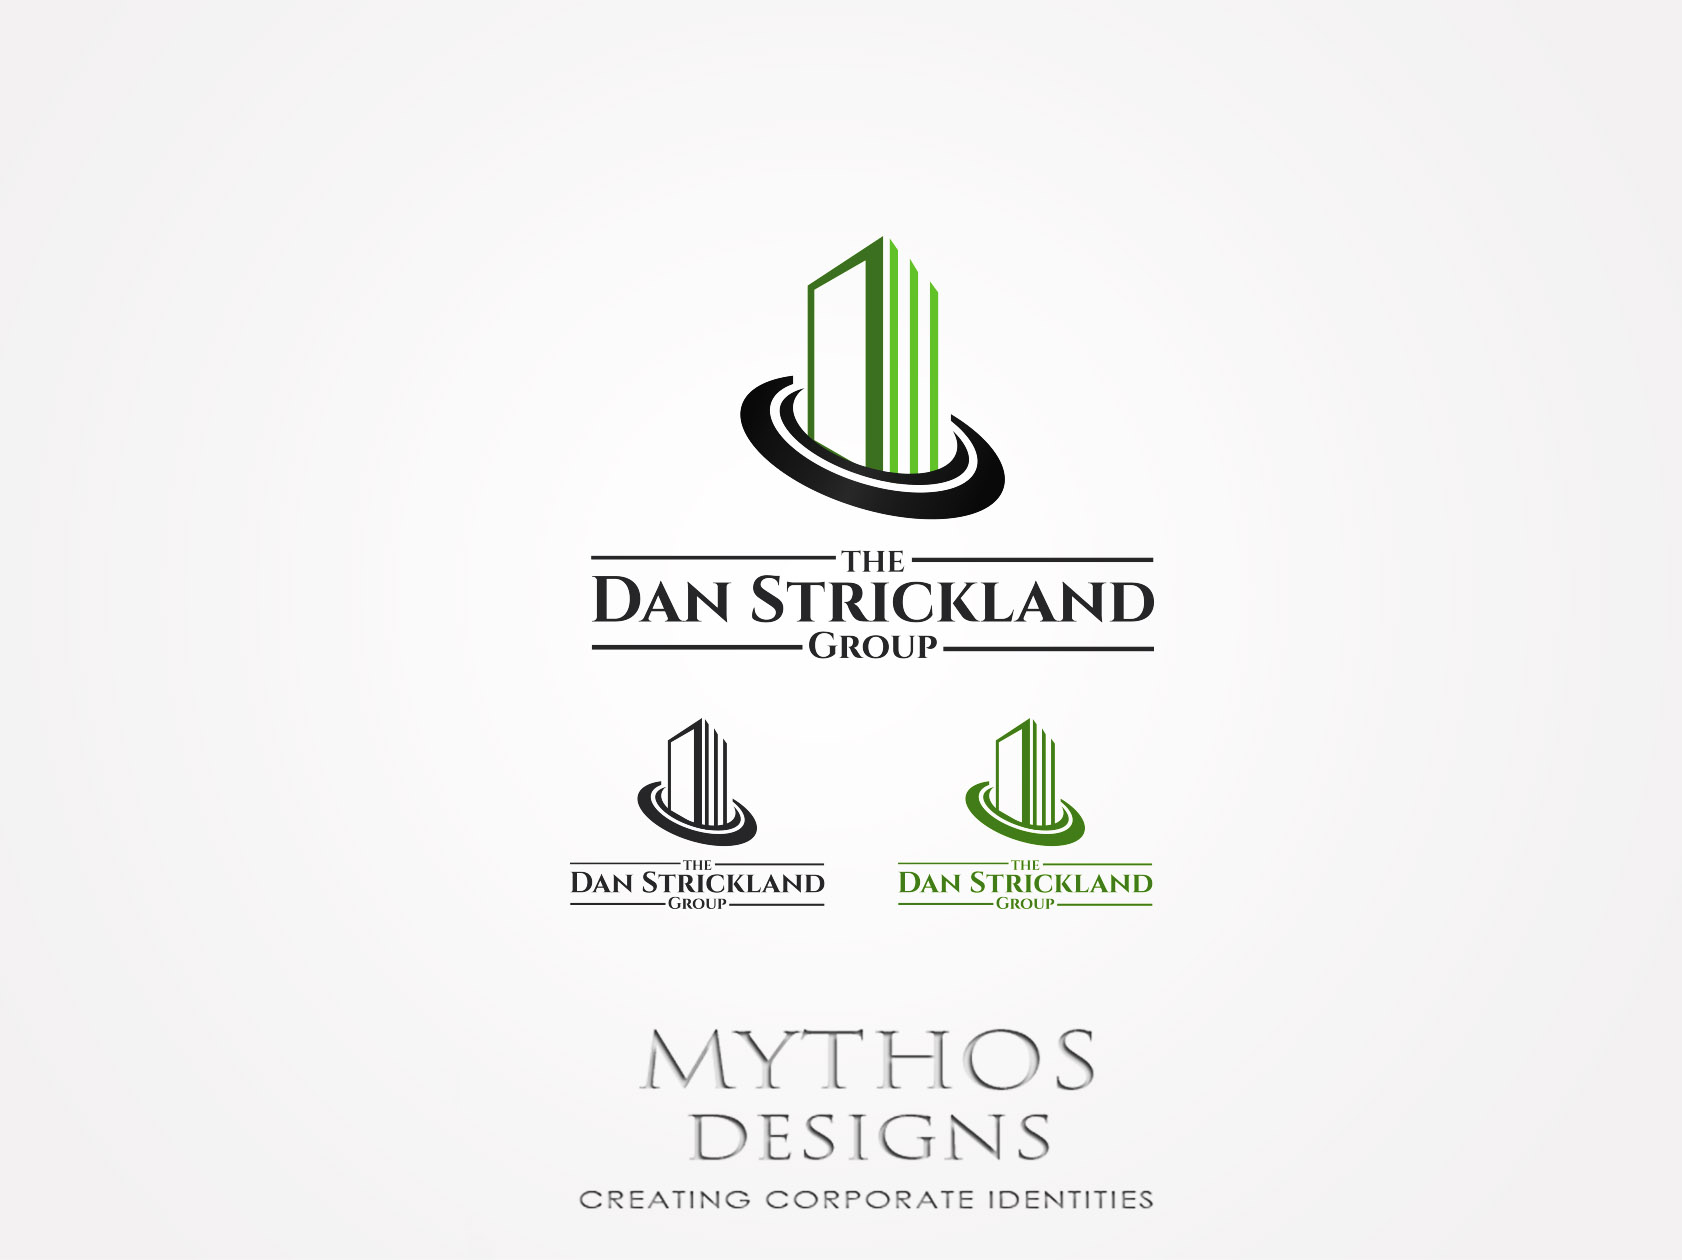 Logo Design by Mythos Designs - Entry No. 141 in the Logo Design Contest Creative Logo Design for The Dan Strickland Group.